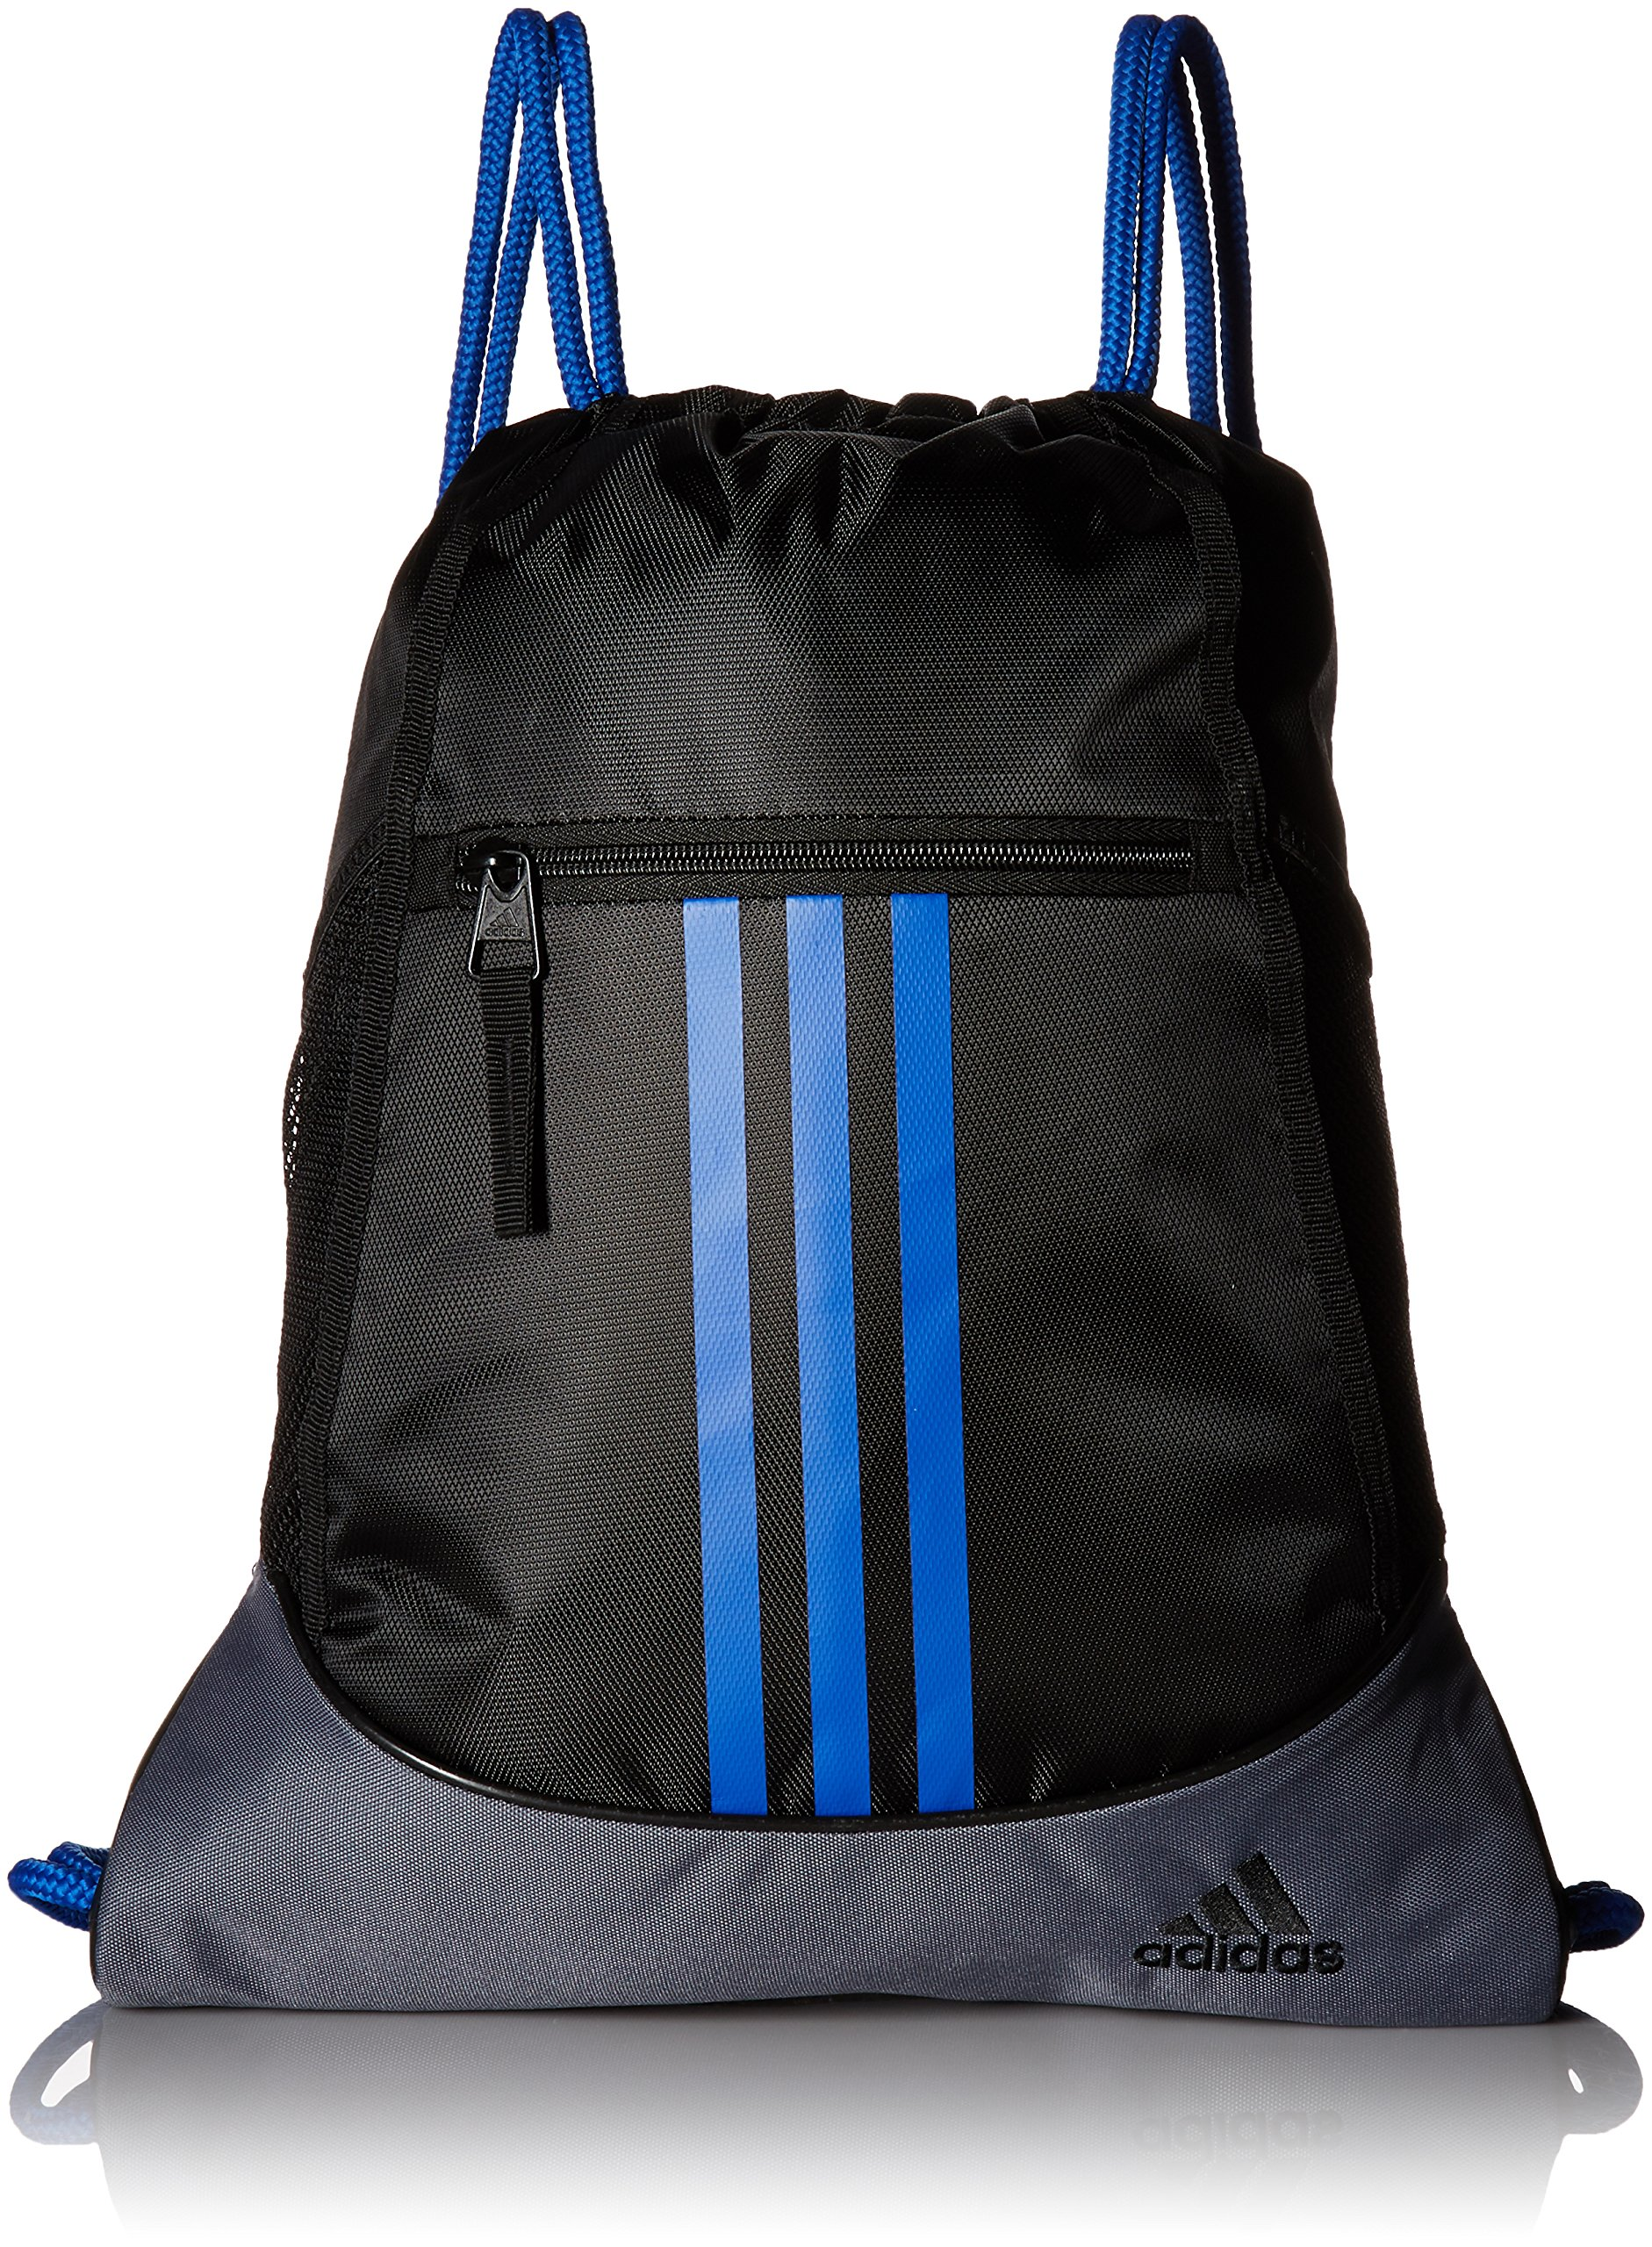 bcf388f4cda7 Galleon - Adidas Alliance II Sackpack